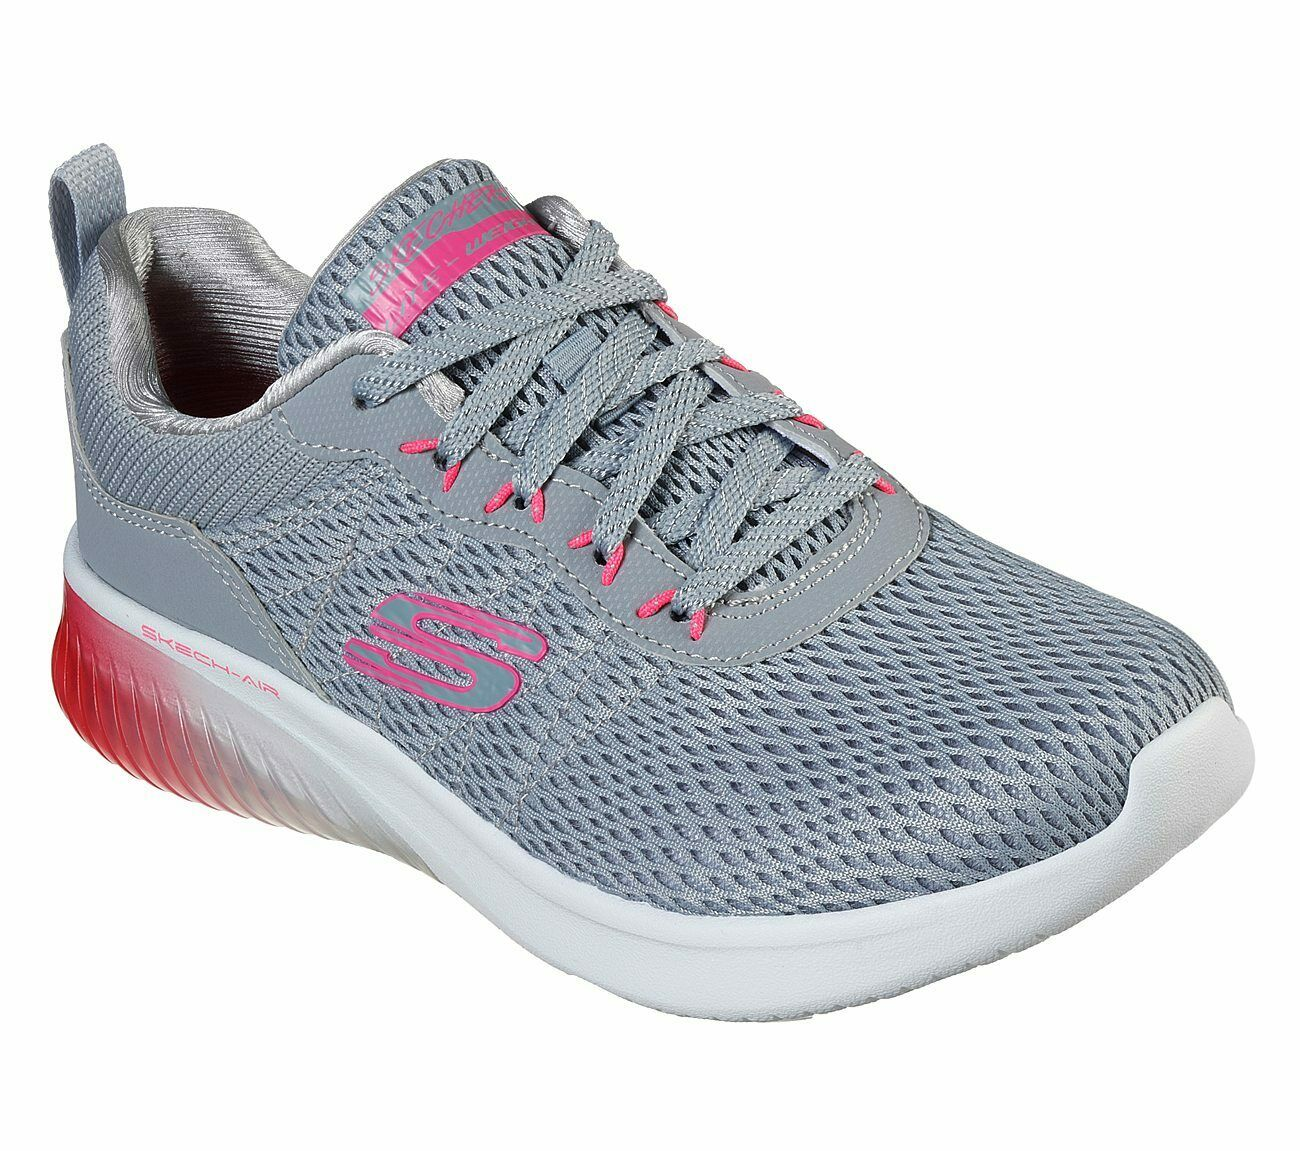 Skechers Skech-Air Ultra Flex Womens Womens Womens Trainers Cushioned Sporty Mesh shoes 13290 1f73f1